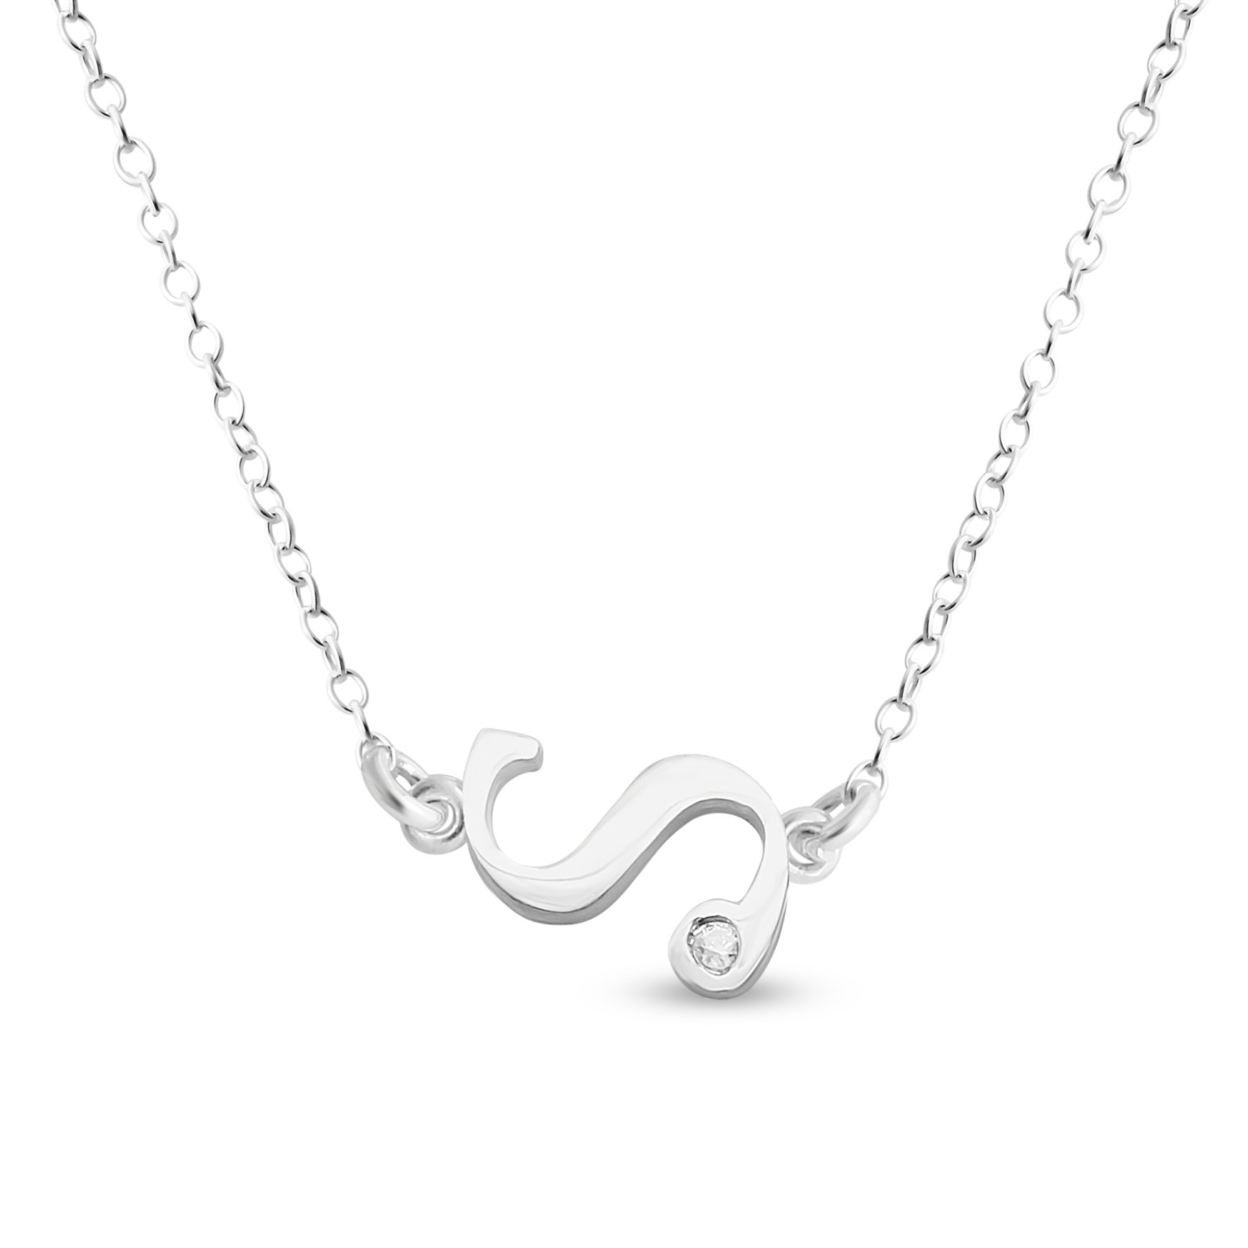 Initial Script Letter S With Clear Cubic Zirconia Stone Sideways Charm Pendant Necklace #925 Sterling Silver #azaggi N0853s_s 12 Child